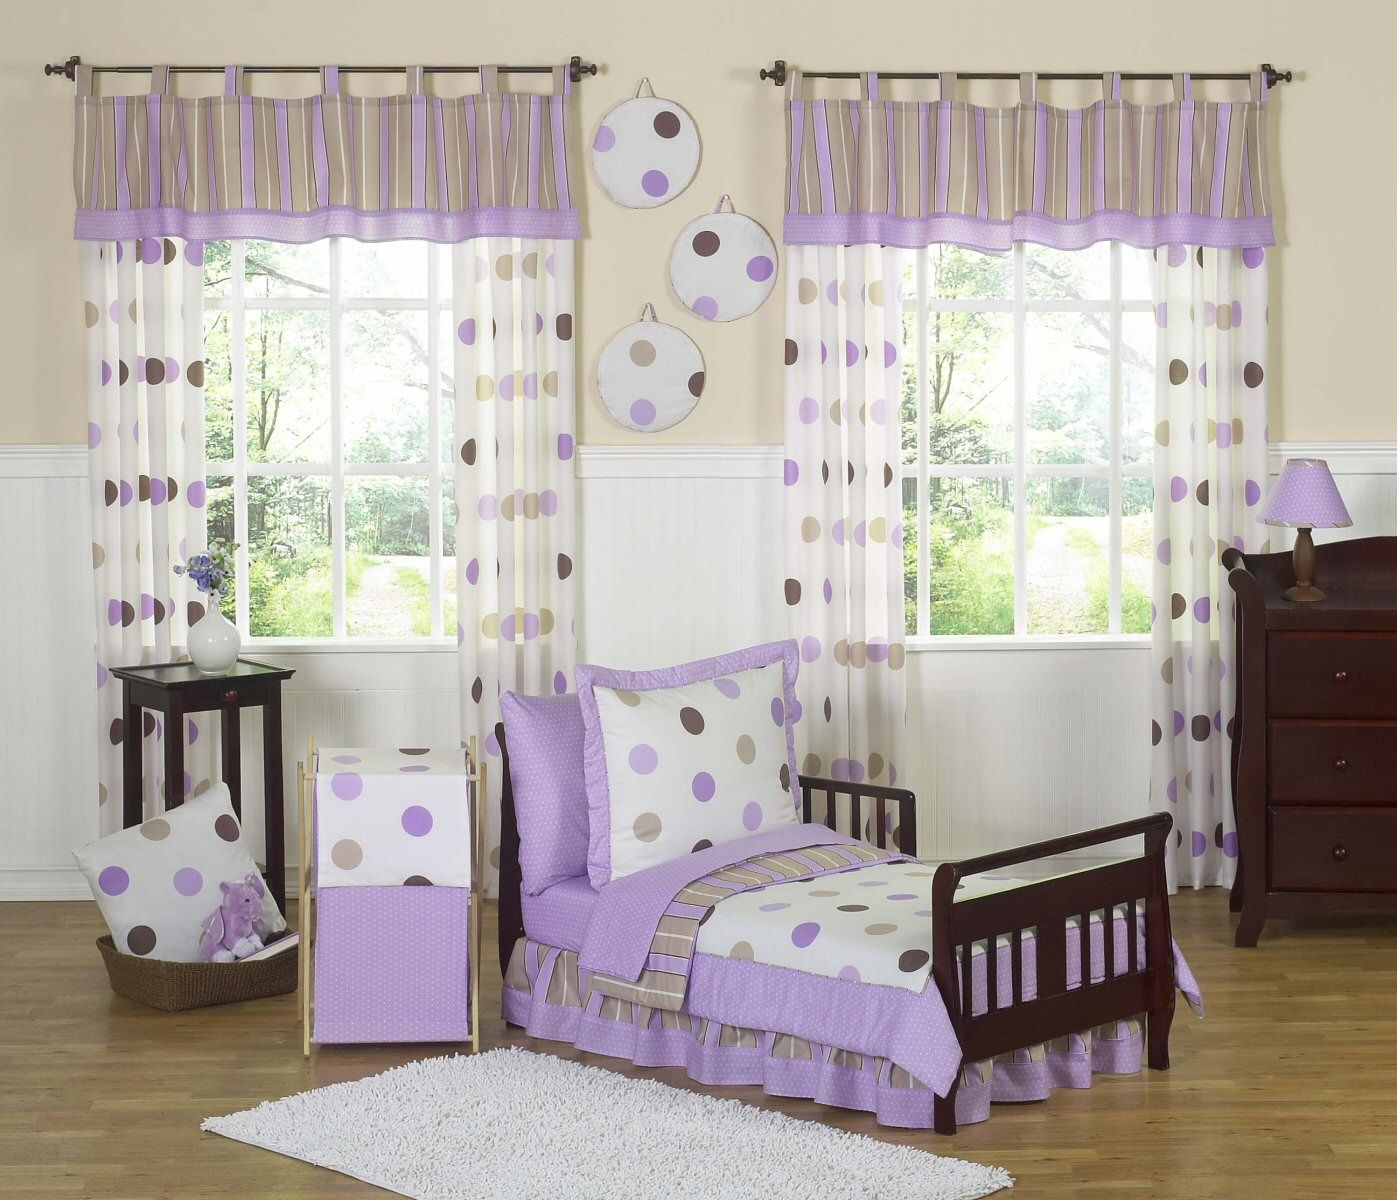 17 Best images about BaBy BaBy on Pinterest   Pink girls bedrooms   Decorating ideas and Baby girls. 17 Best images about BaBy BaBy on Pinterest   Pink girls bedrooms